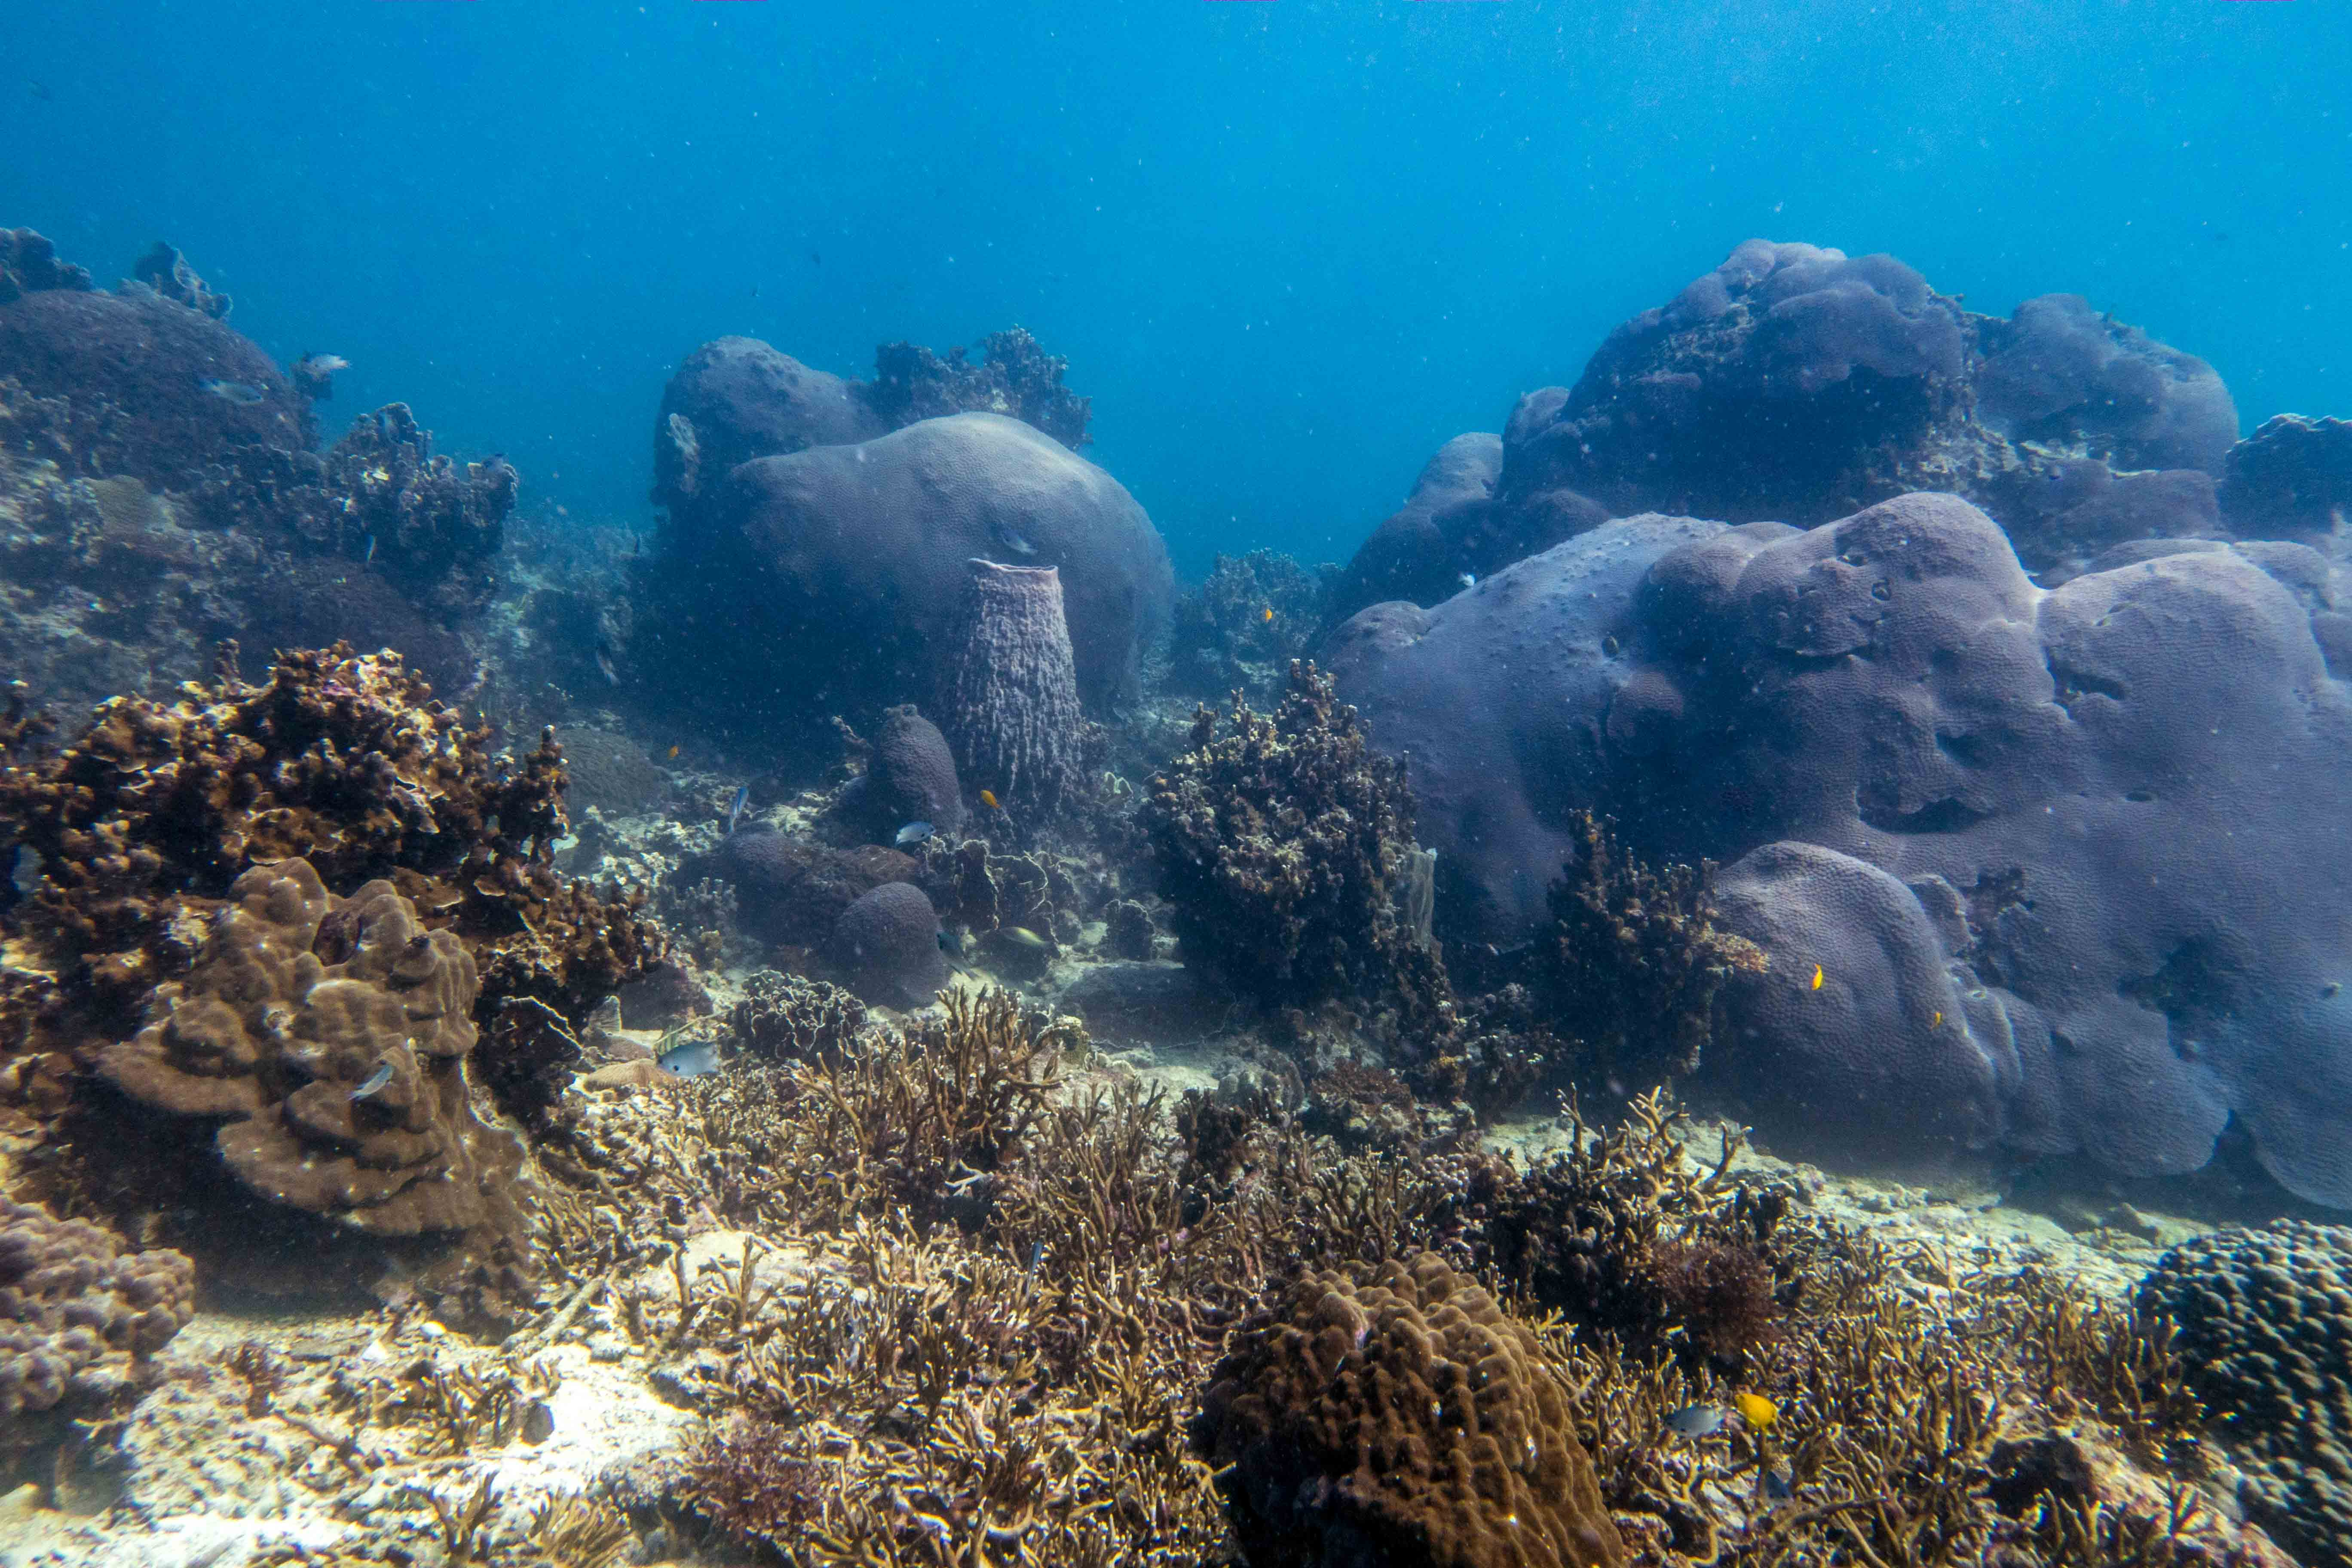 Coral Growth Forms